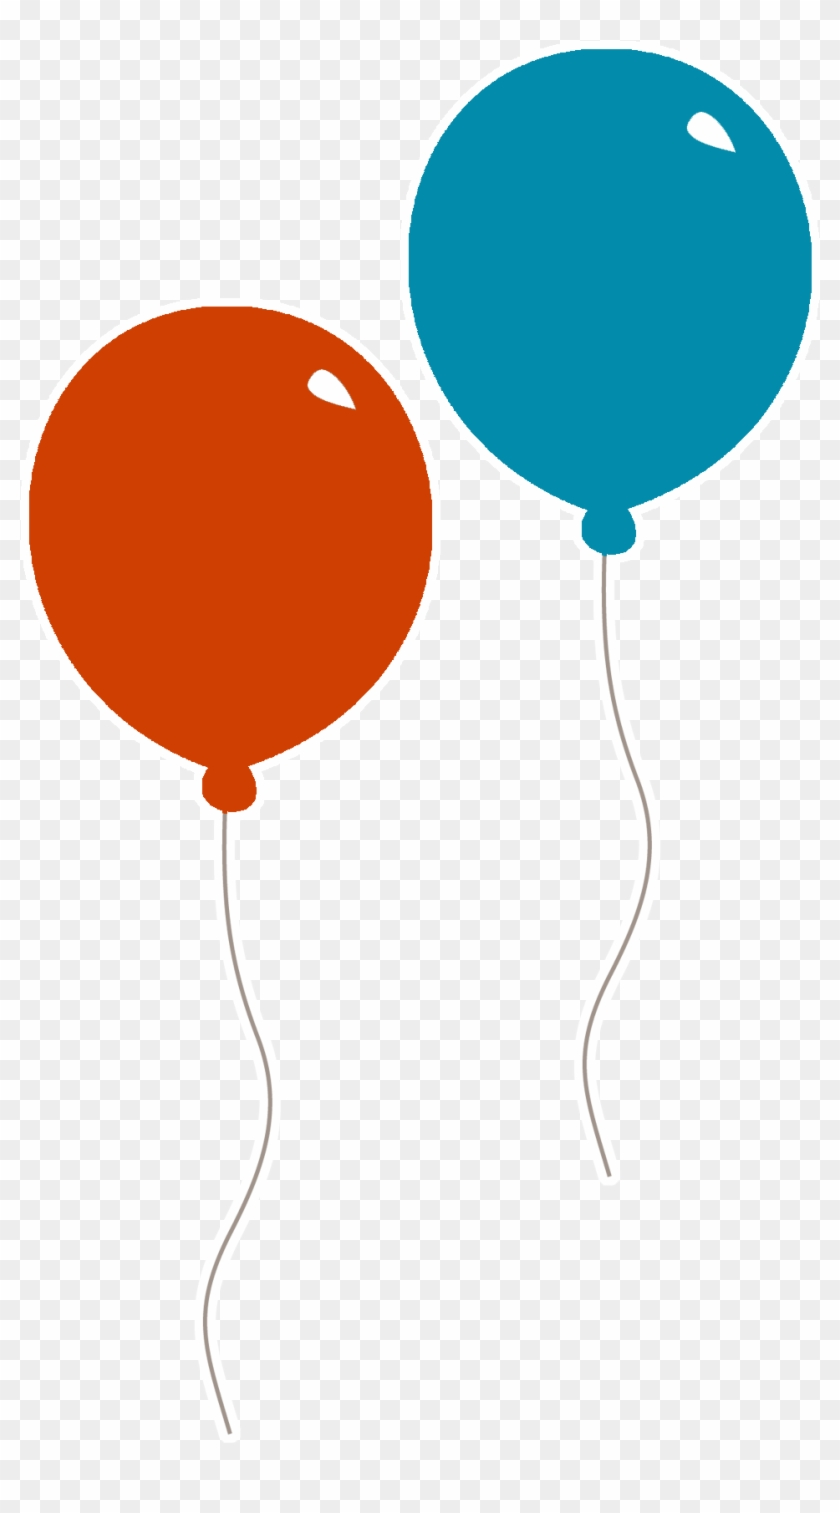 Balloon Red Blue Clip Art Red And Blue Balloons Free Transparent Png Clipart Images Download